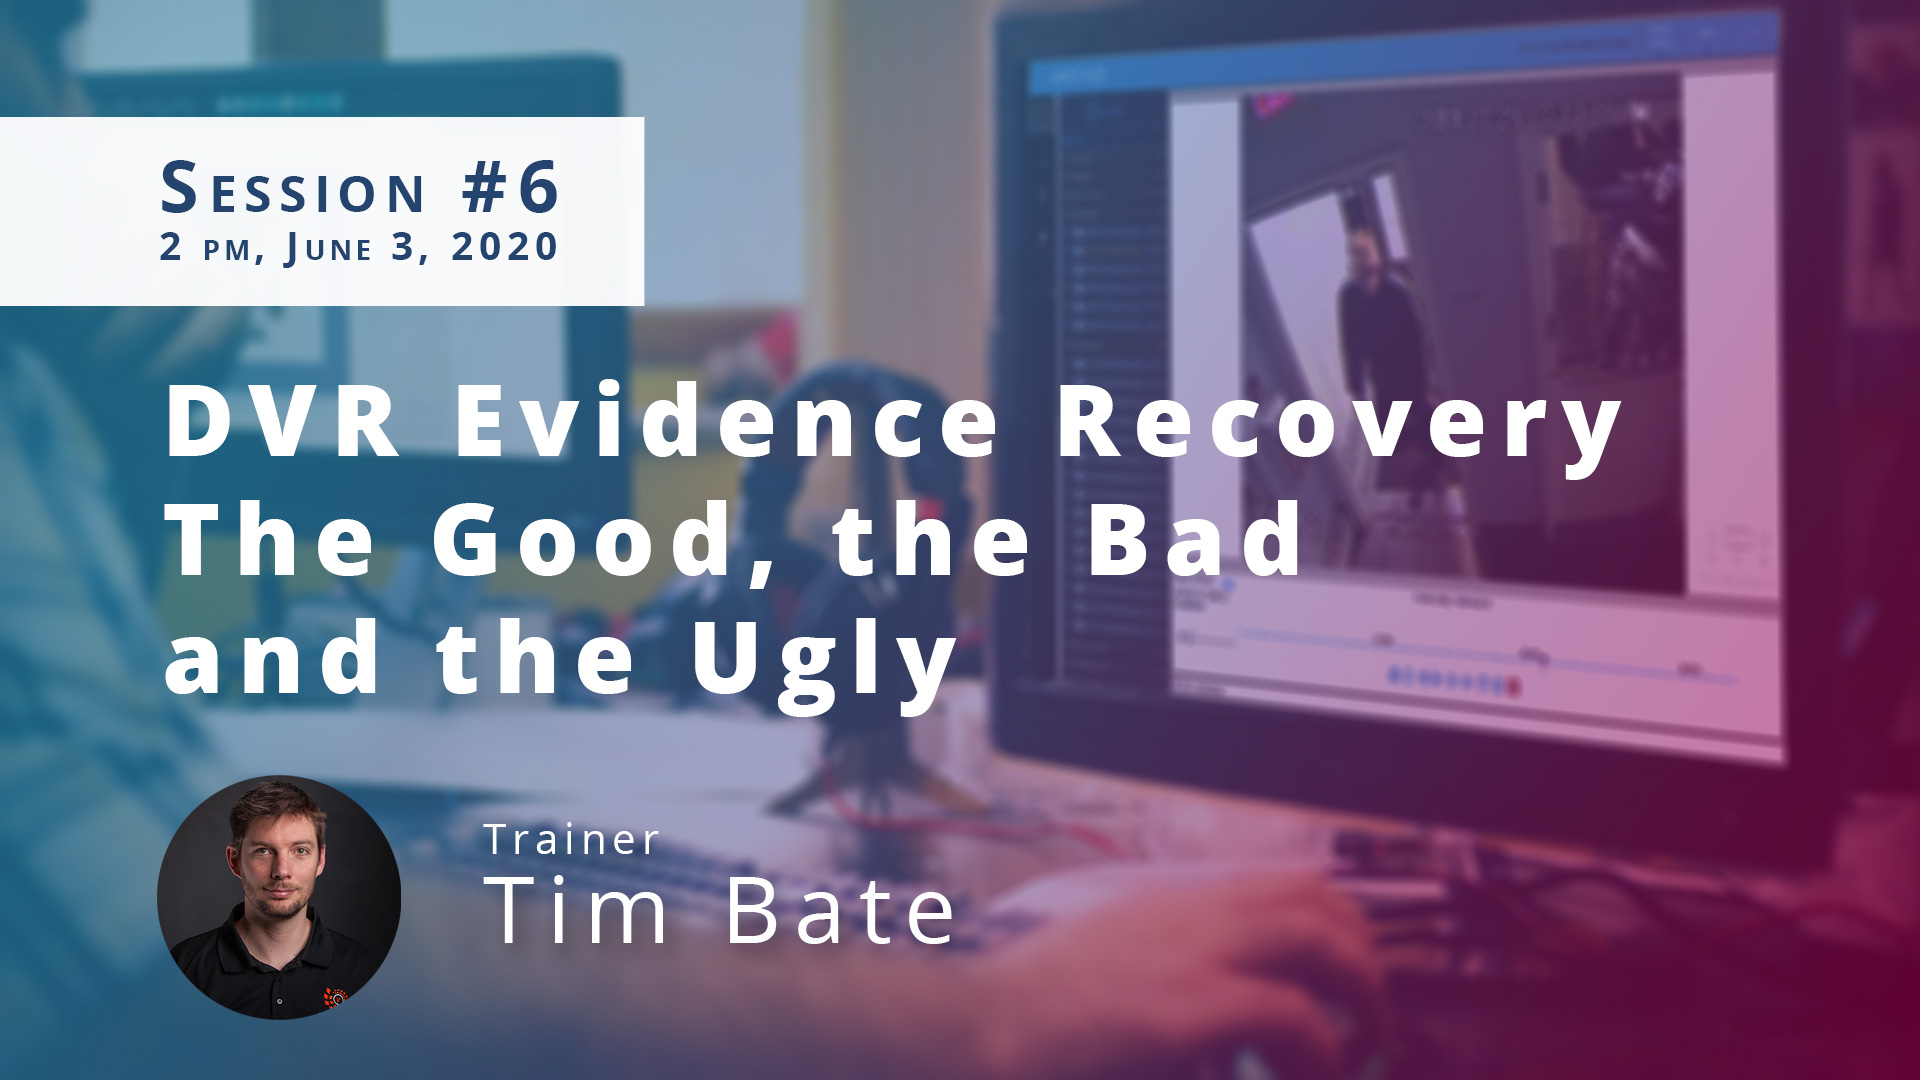 DVR Evidence Recovery: The Good, the Bad, and the Ugly